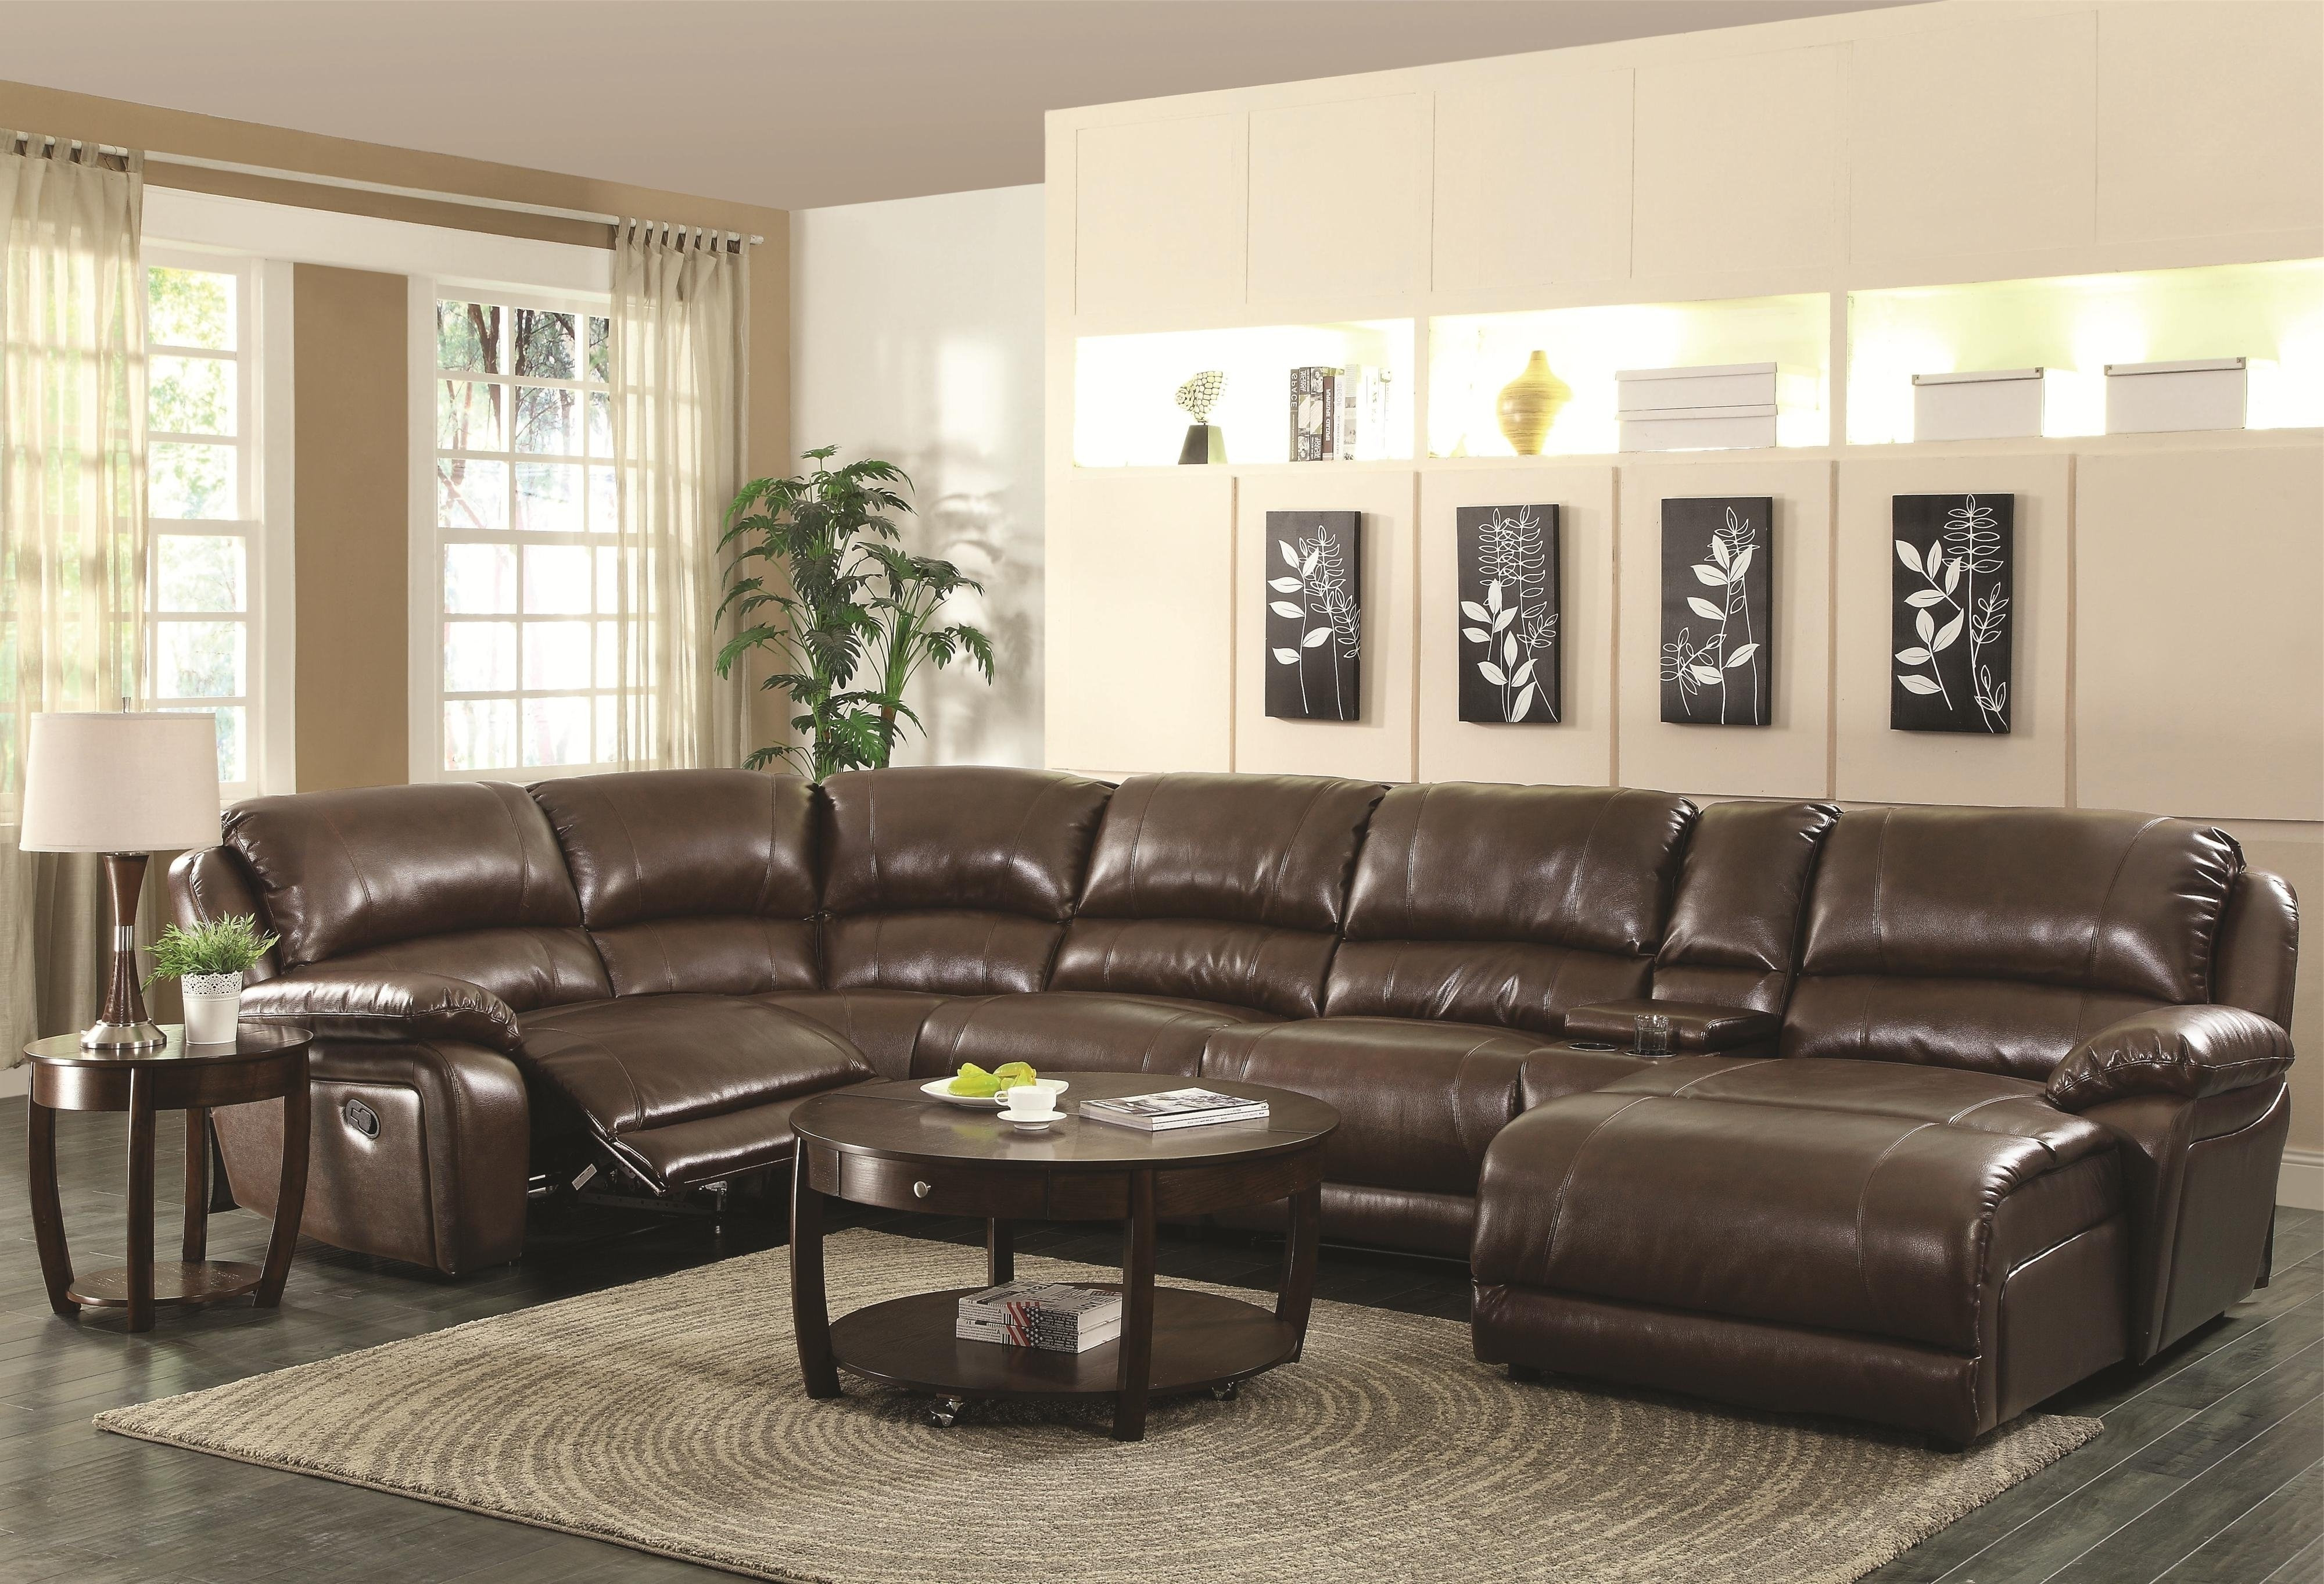 Johnny Janosik Sectional Sofas Regarding Fashionable Design Sofa With Chaise Lounge Modern — The Decoras Jchansdesigns (View 6 of 20)